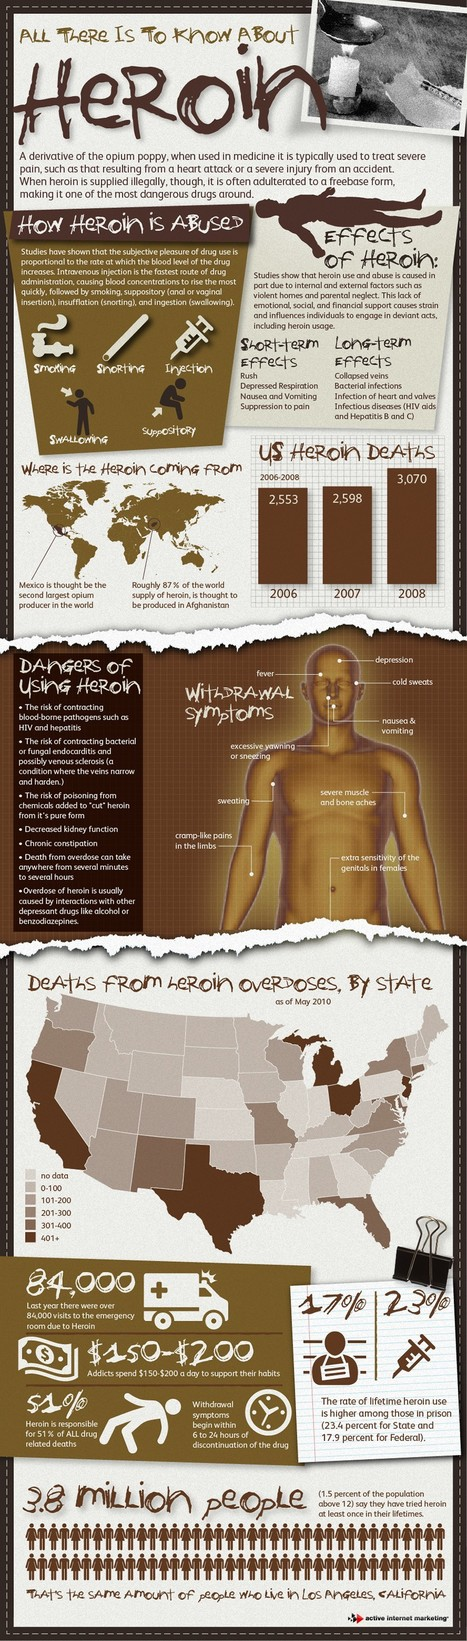 Case Study: All about Heroin - Facts, Effects and Recovery | All Infographics | All Infographics | Scoop.it